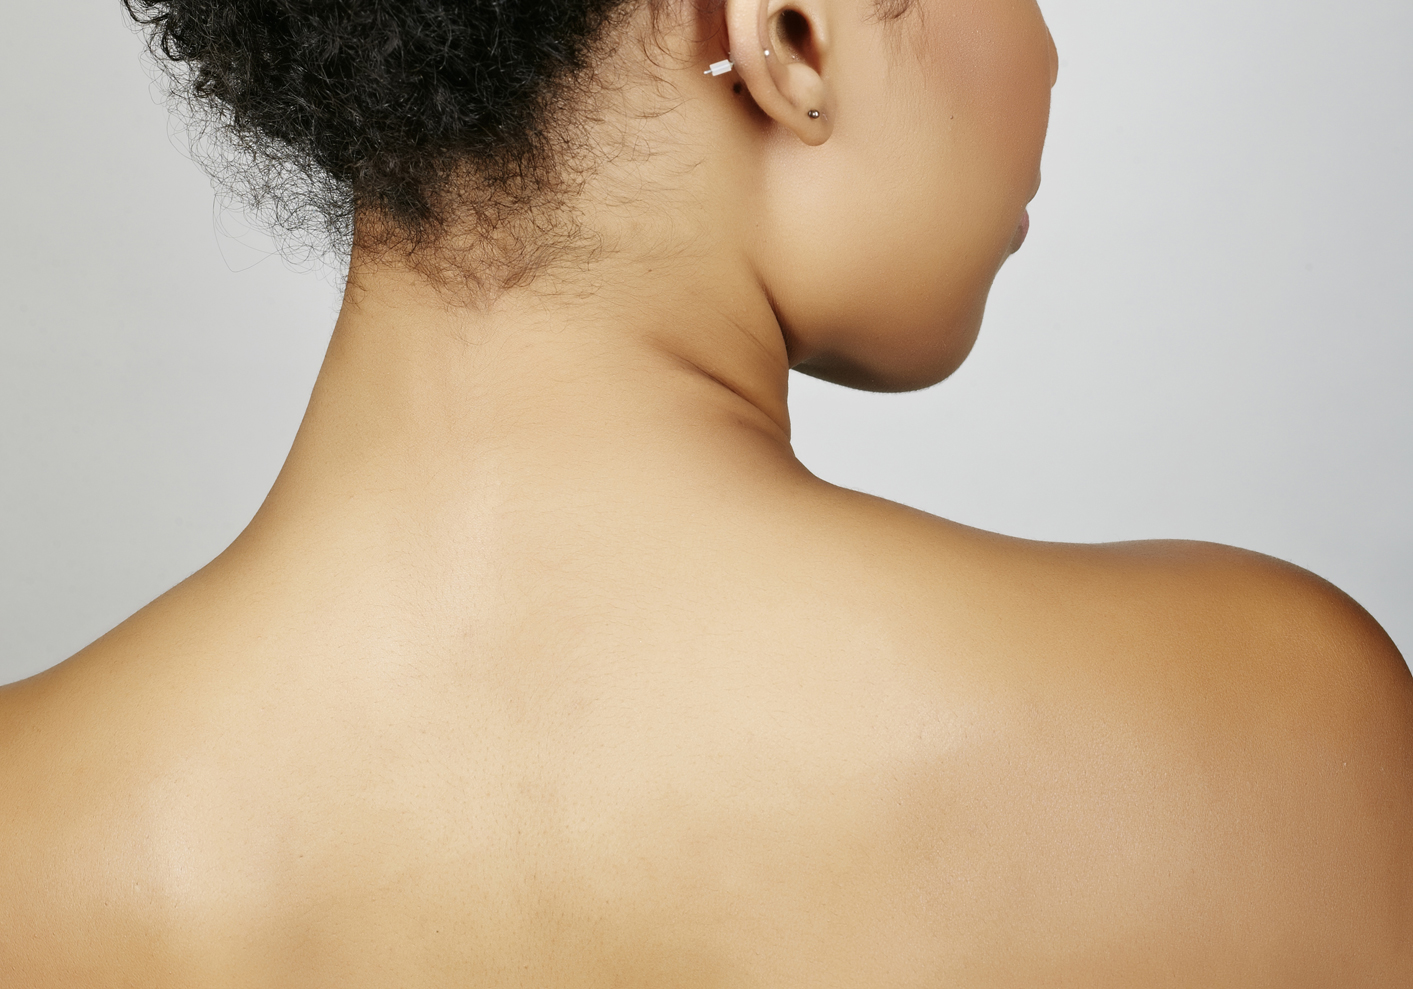 The Battle with Bacne: How to Treat and Cover Breakouts on Your Back